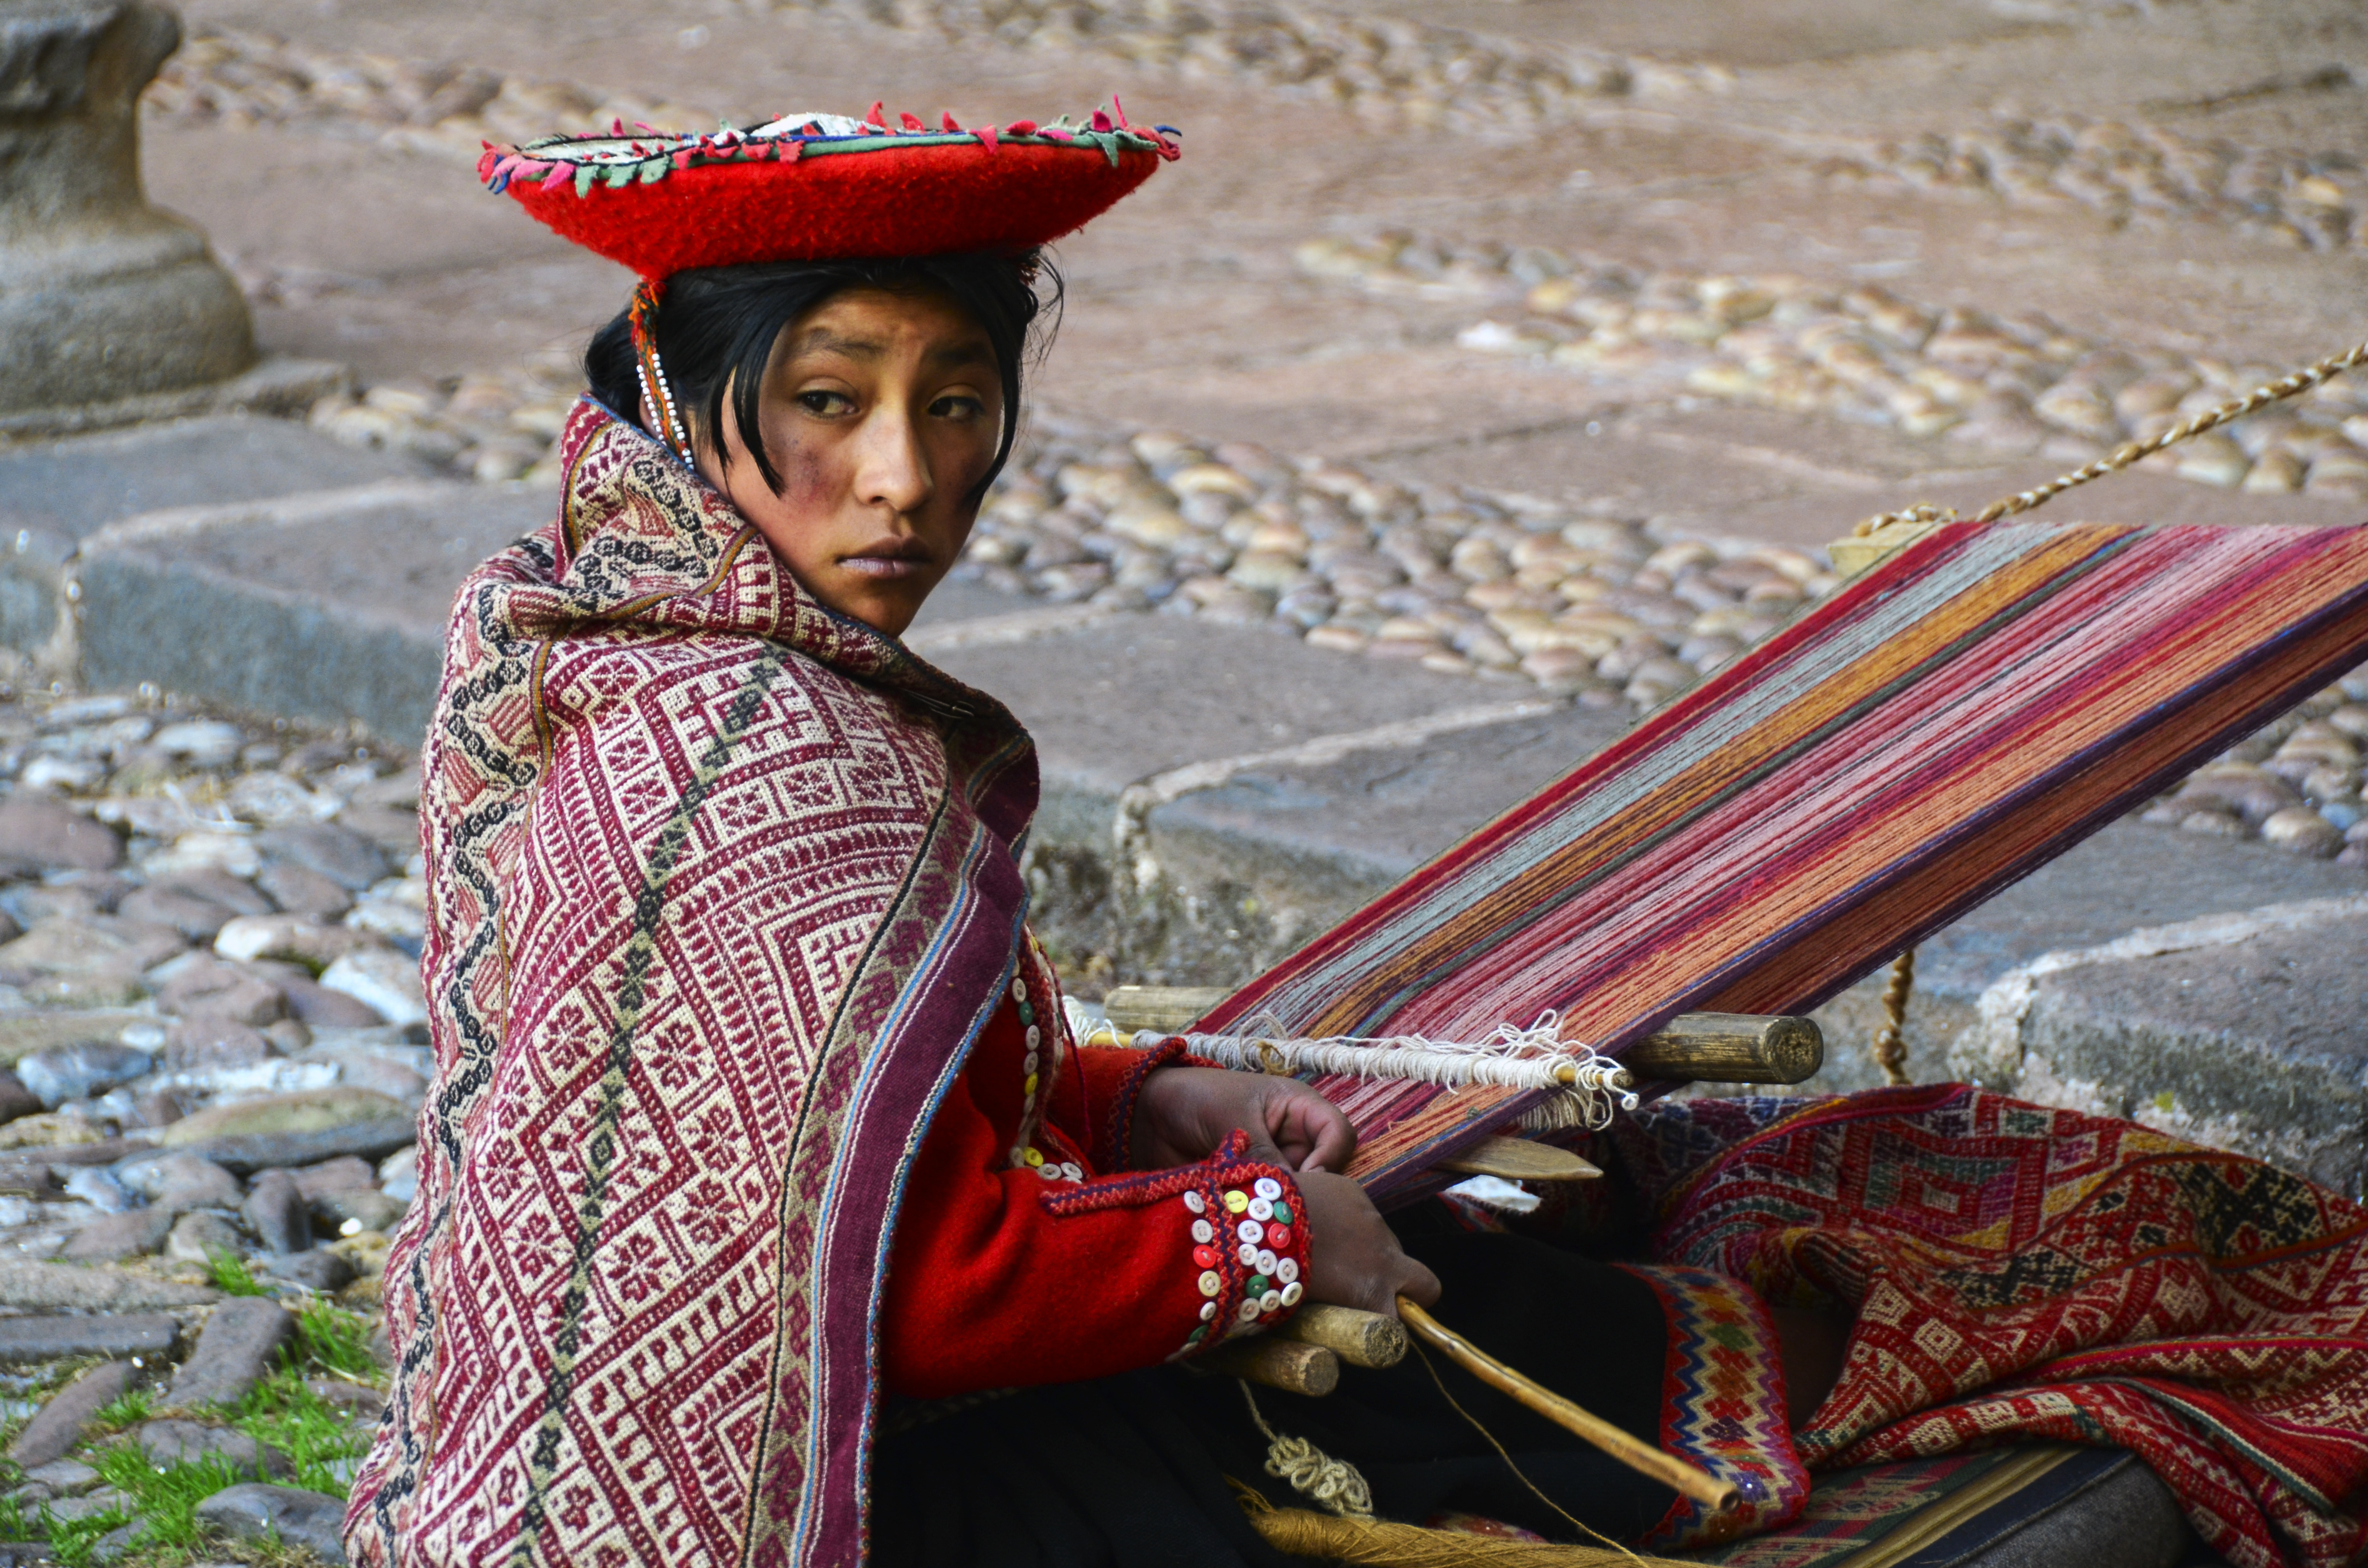 Young artisan weaver in colorful clothing